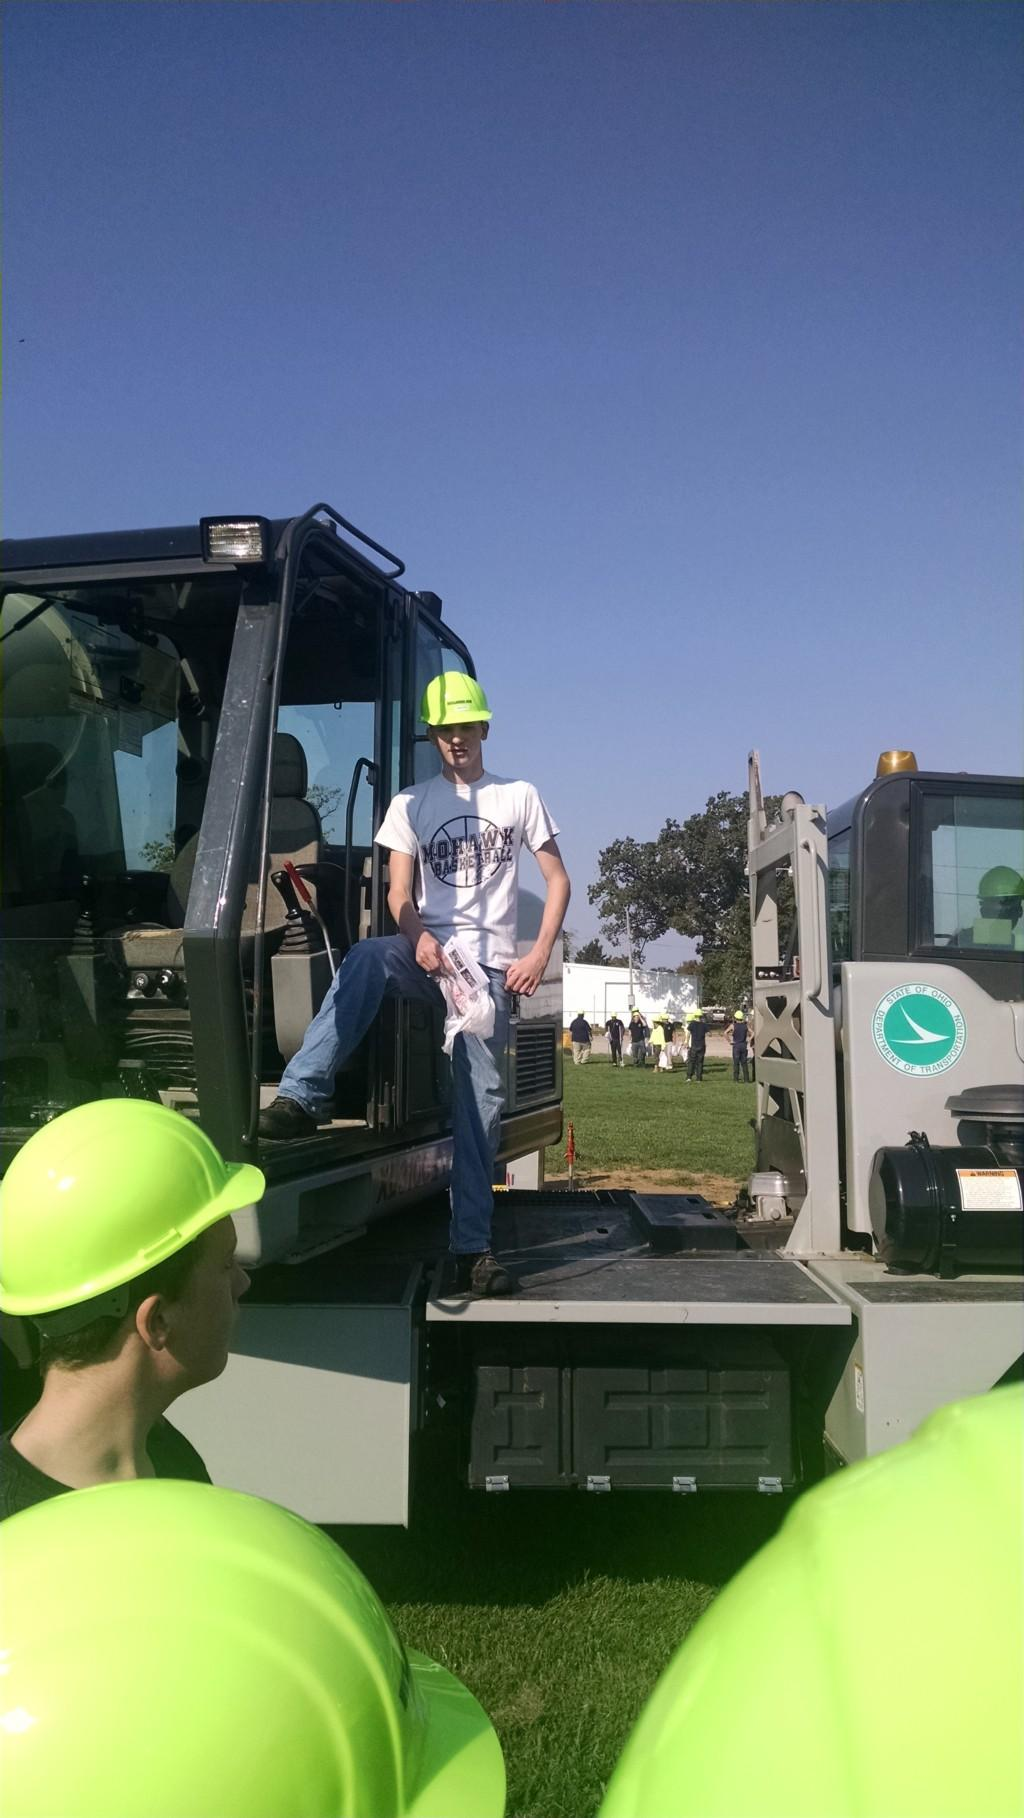 Student operating heavy construction equipment